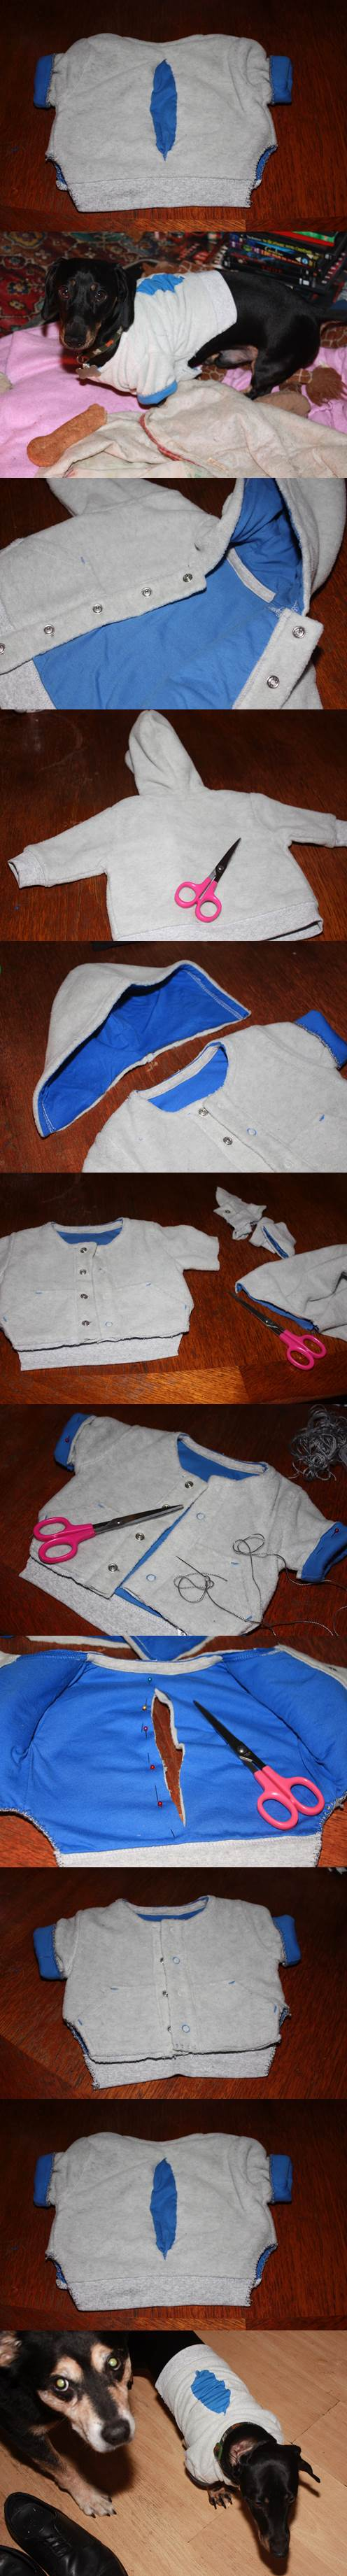 DIY Dog Coat from Baby Coat 2